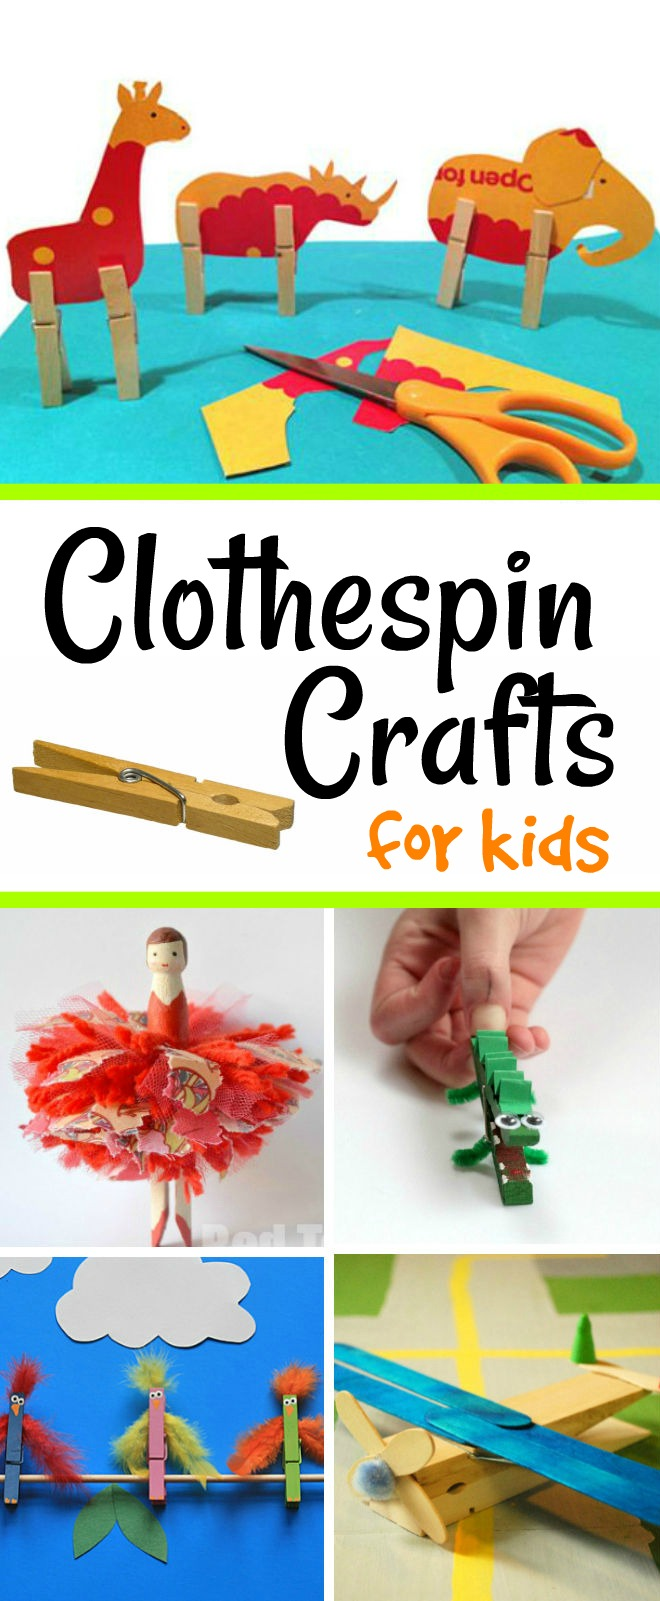 Clothespin Crafts for Kids - 16 adorable crafts kids will love making and playing with after!